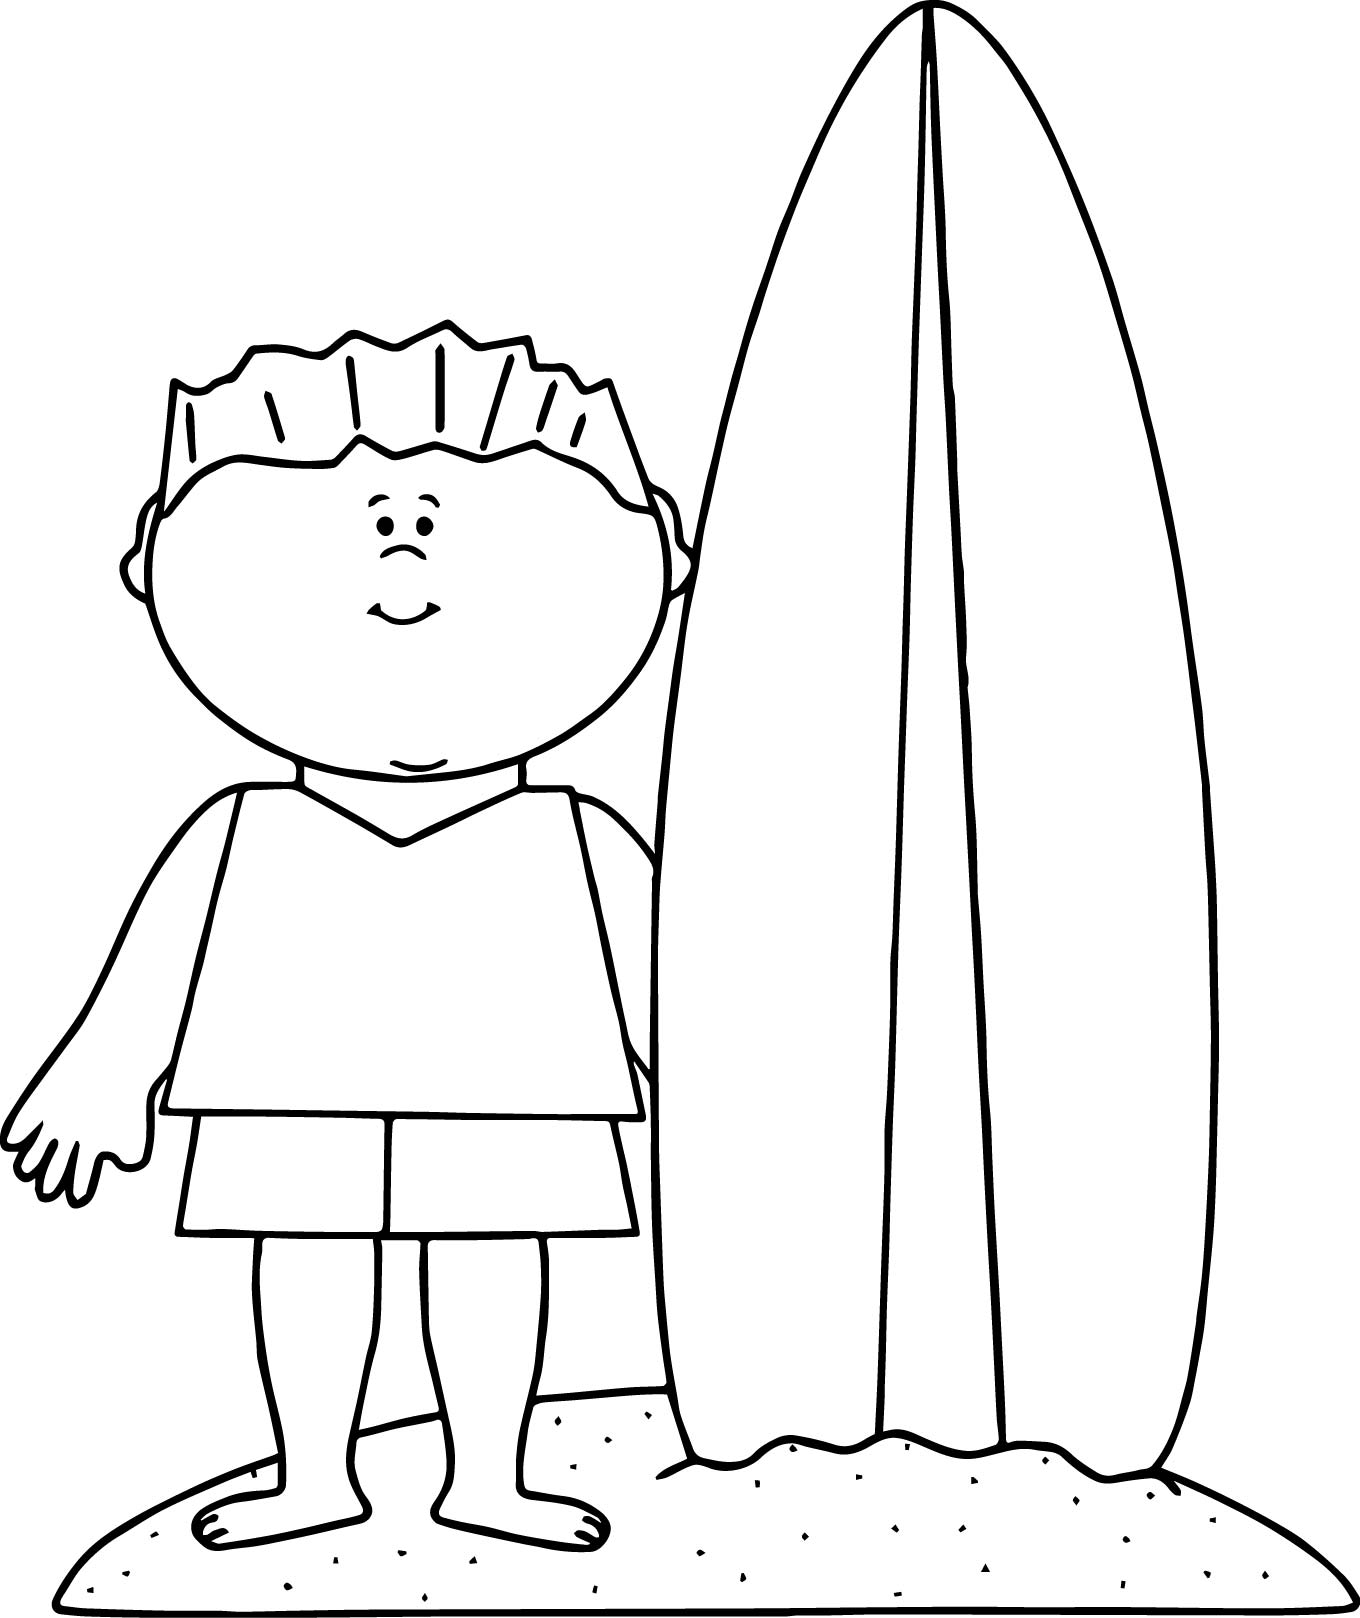 coloring pictures of surfboards surfboard coloring pages summer beach life free coloring pictures of surfboards